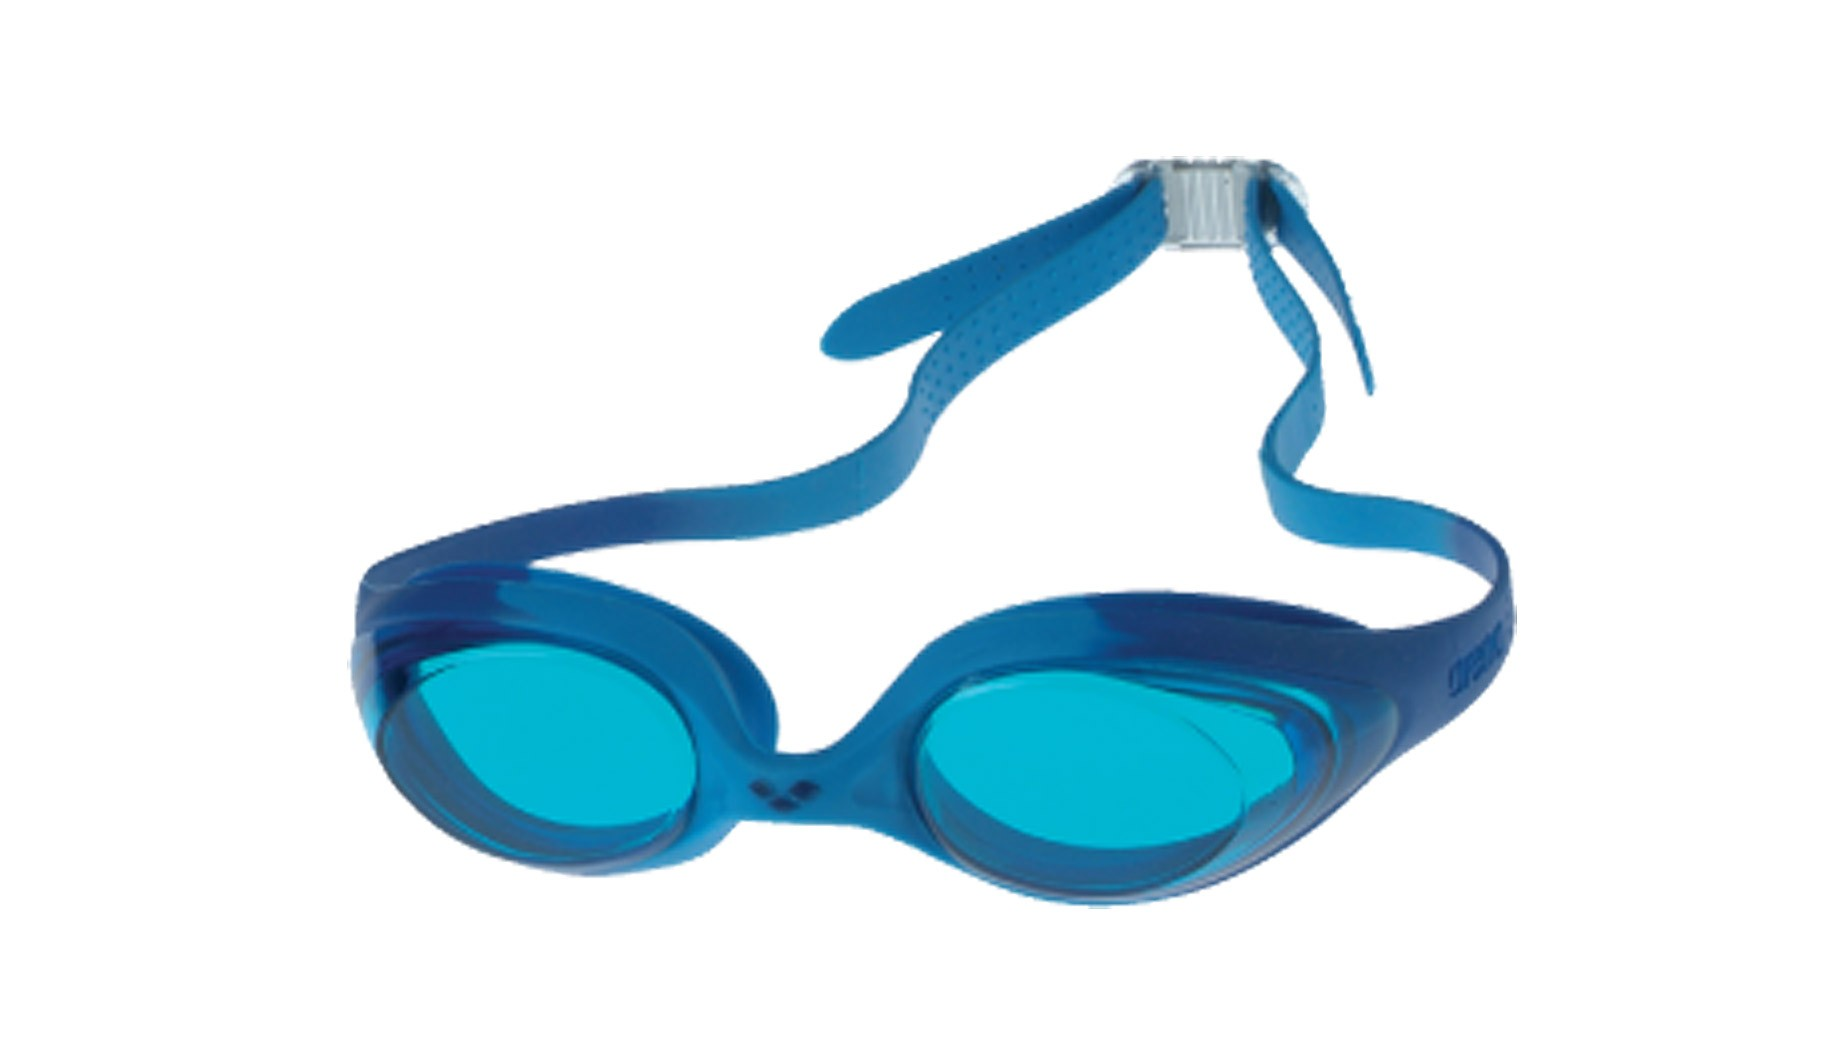 1833x1045 Goggles Clipart Swim Team